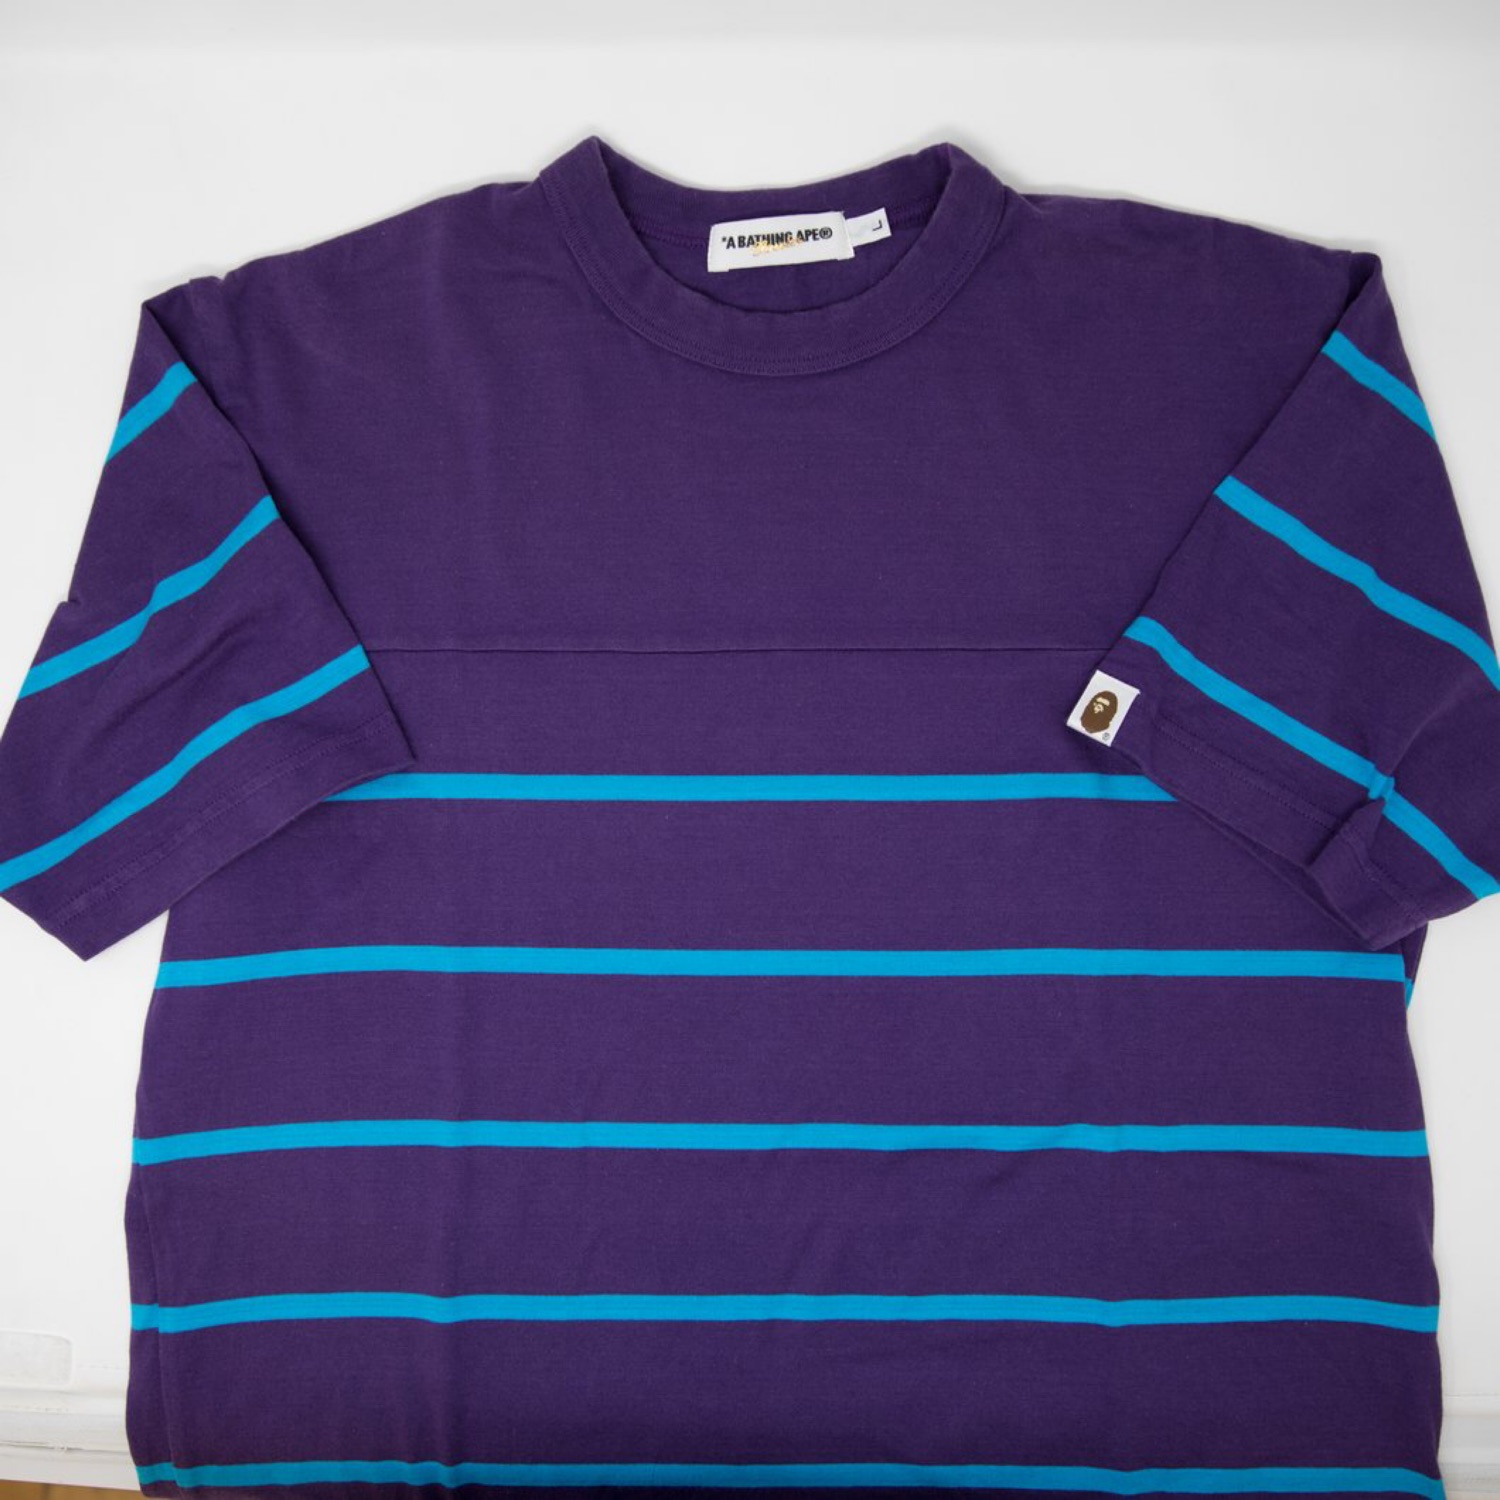 Bape Striped Tee Purple Blue (Used - Large)